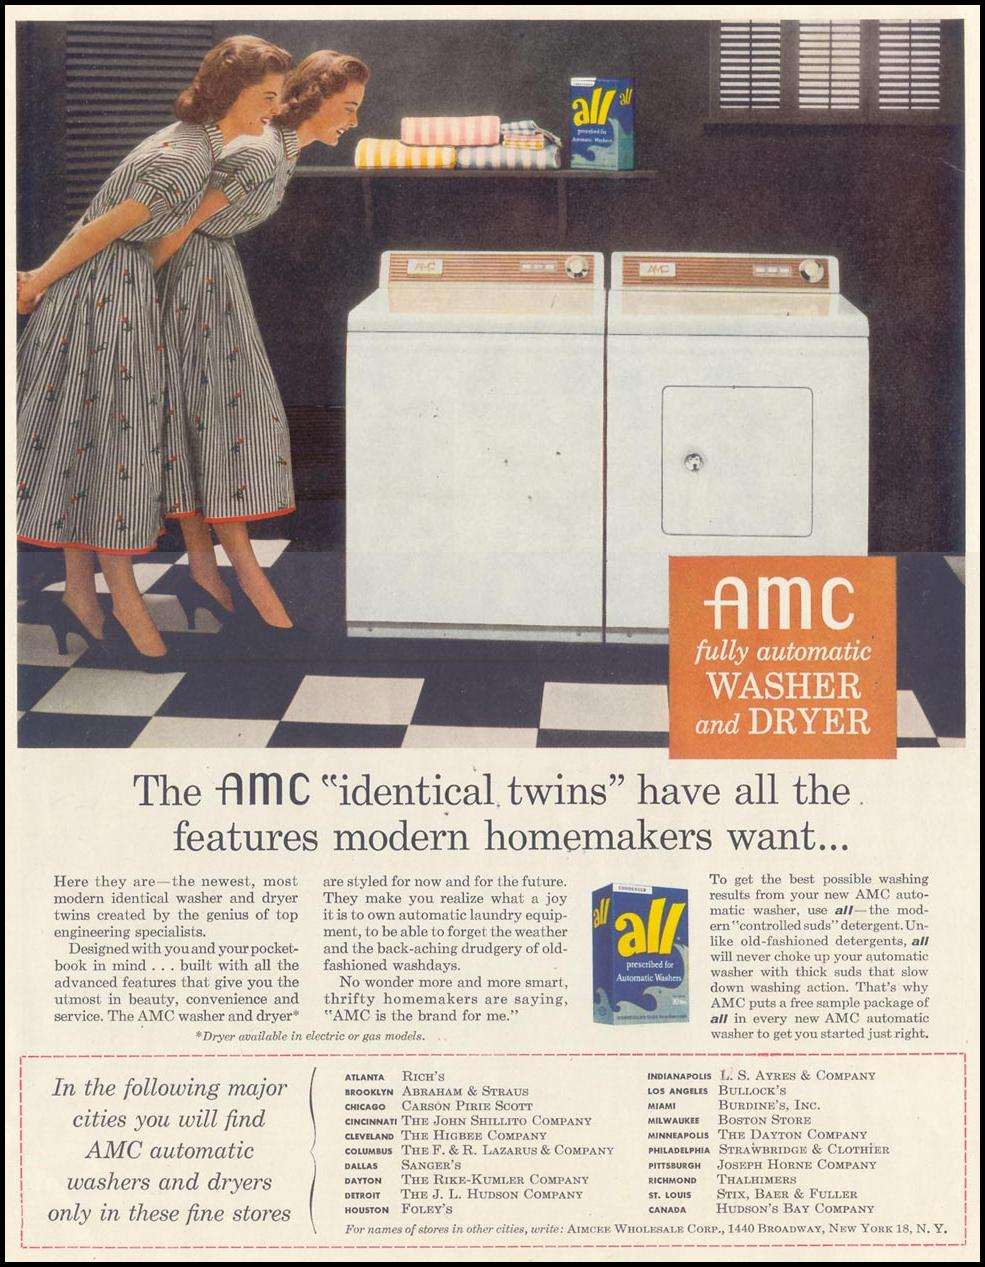 AMC WASHERS AND DRYERS SATURDAY EVENING POST 02/05/1955 INSIDE BACK